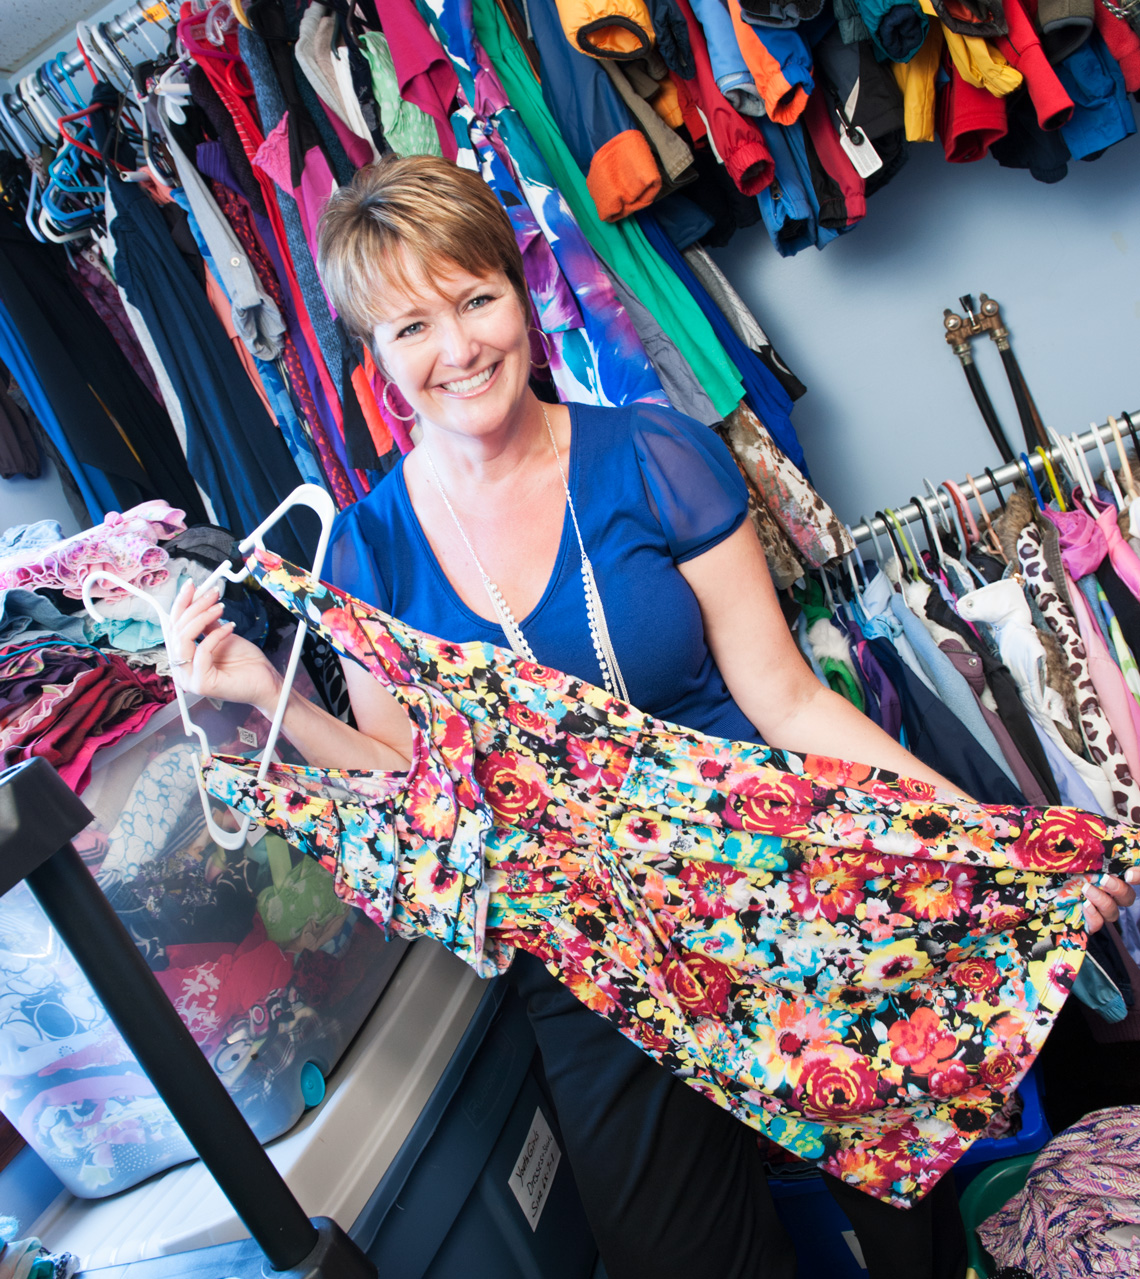 Anne-Marie Bisson, who founded Catie's Closet to honor her late daughter, inside the organization's Donation Center in Dracut. Photo by Kevin Harkins.